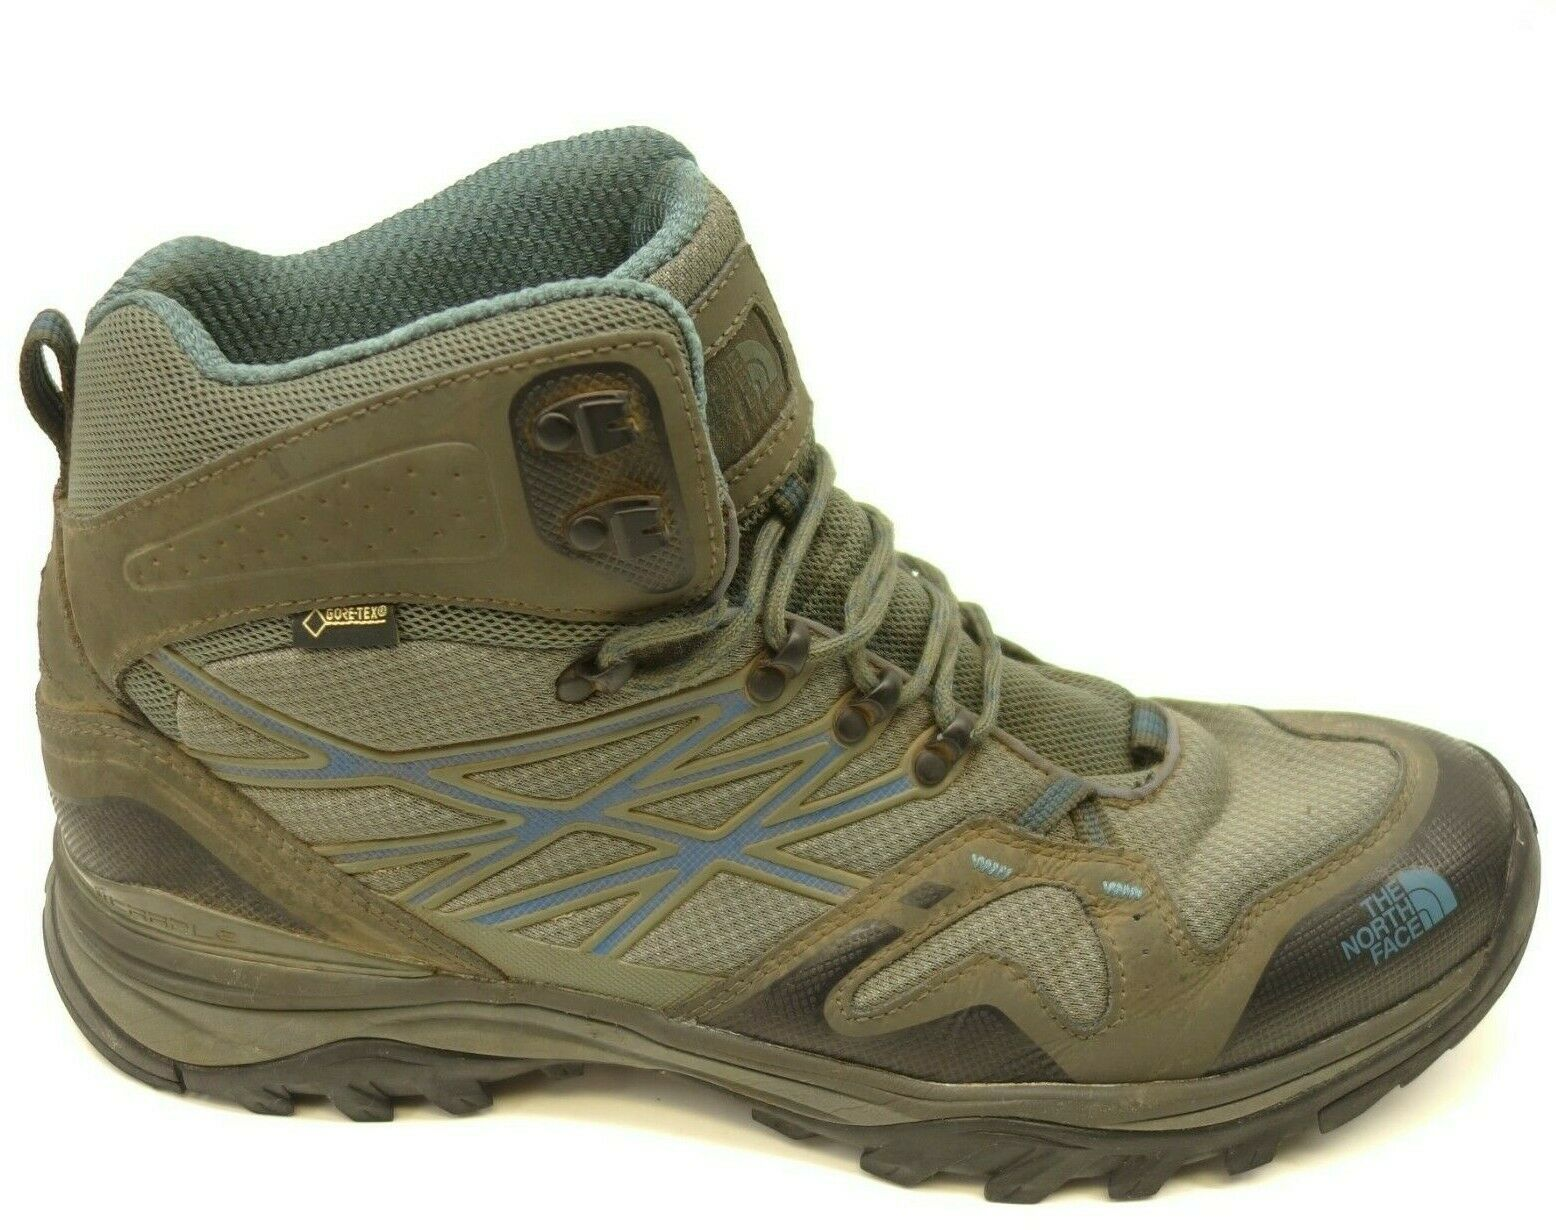 The North Face Mid Endurus Us 14 Eu 48 GTX Wp Senderismo Senderismo botas Hombre